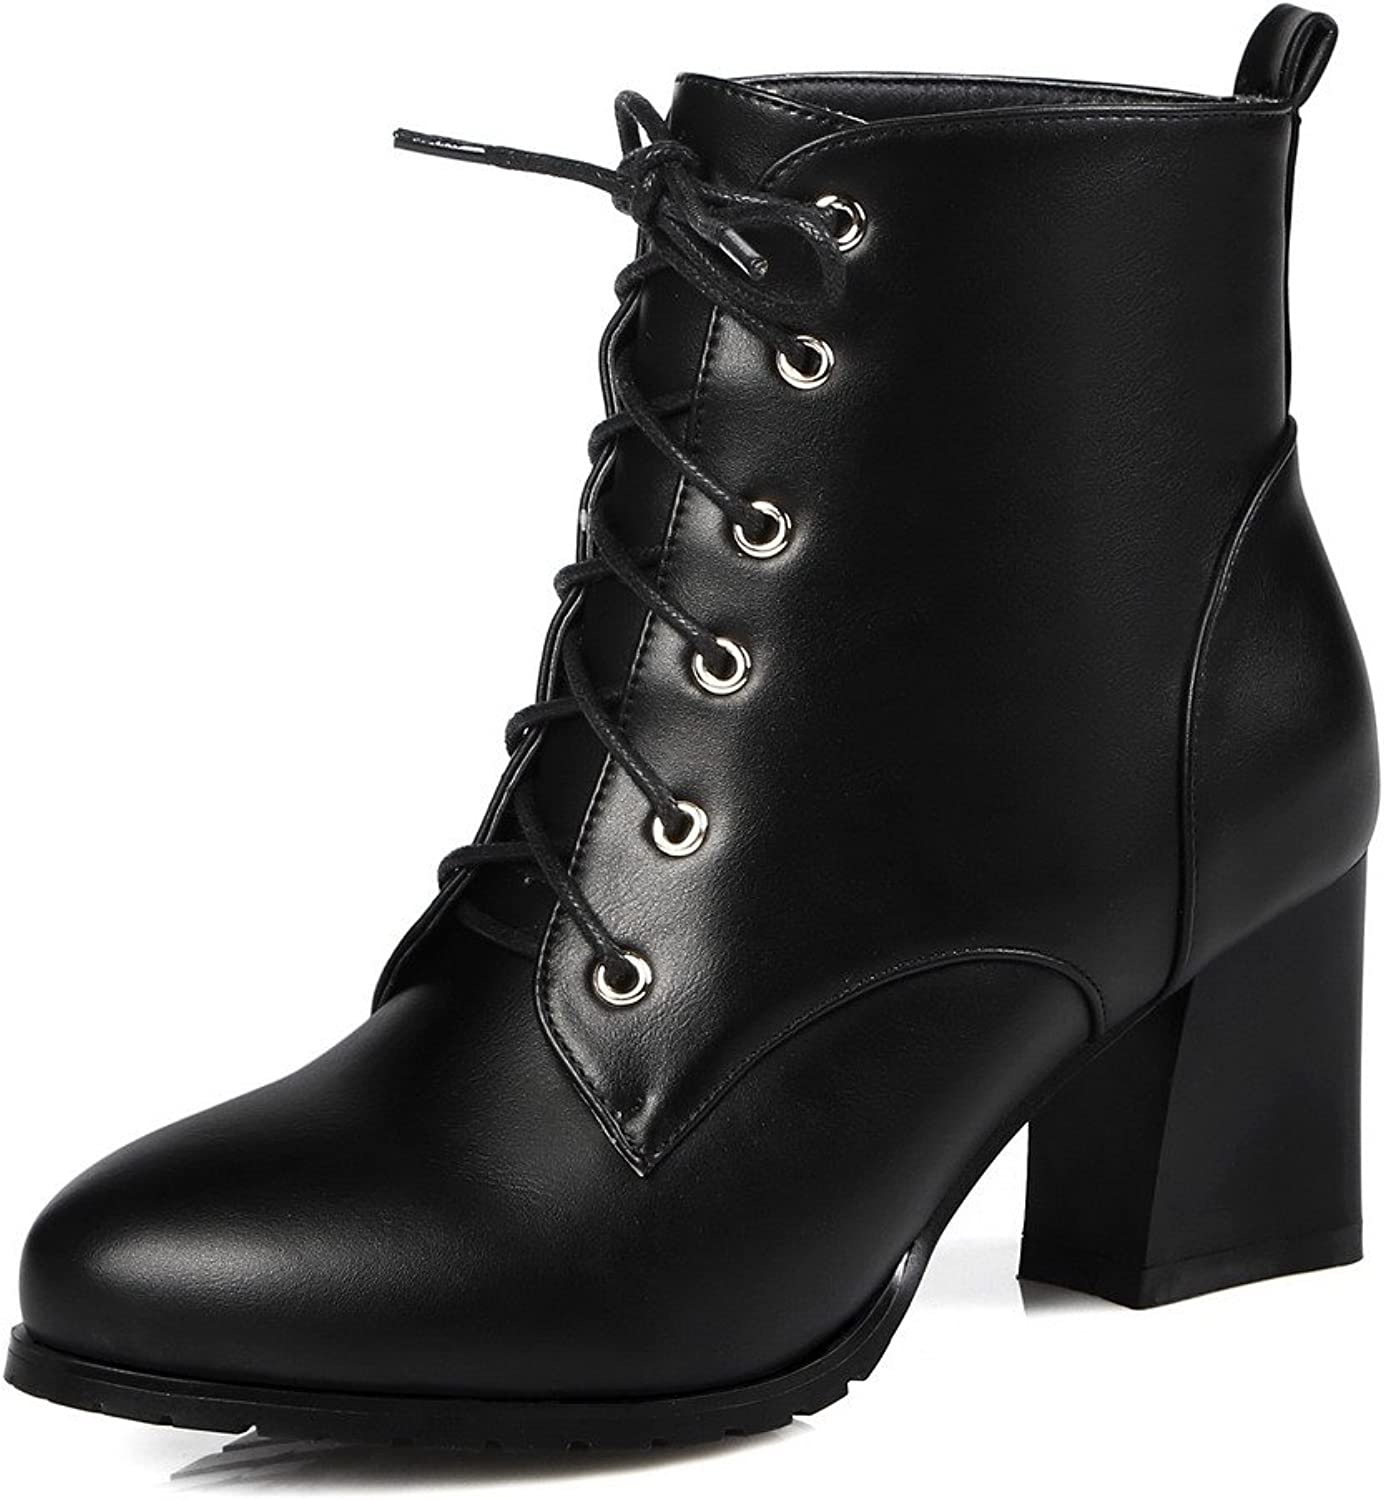 AllhqFashion Women's Soft Material Lace-up Round Closed Toe Kitten-Heels Low-top Boots